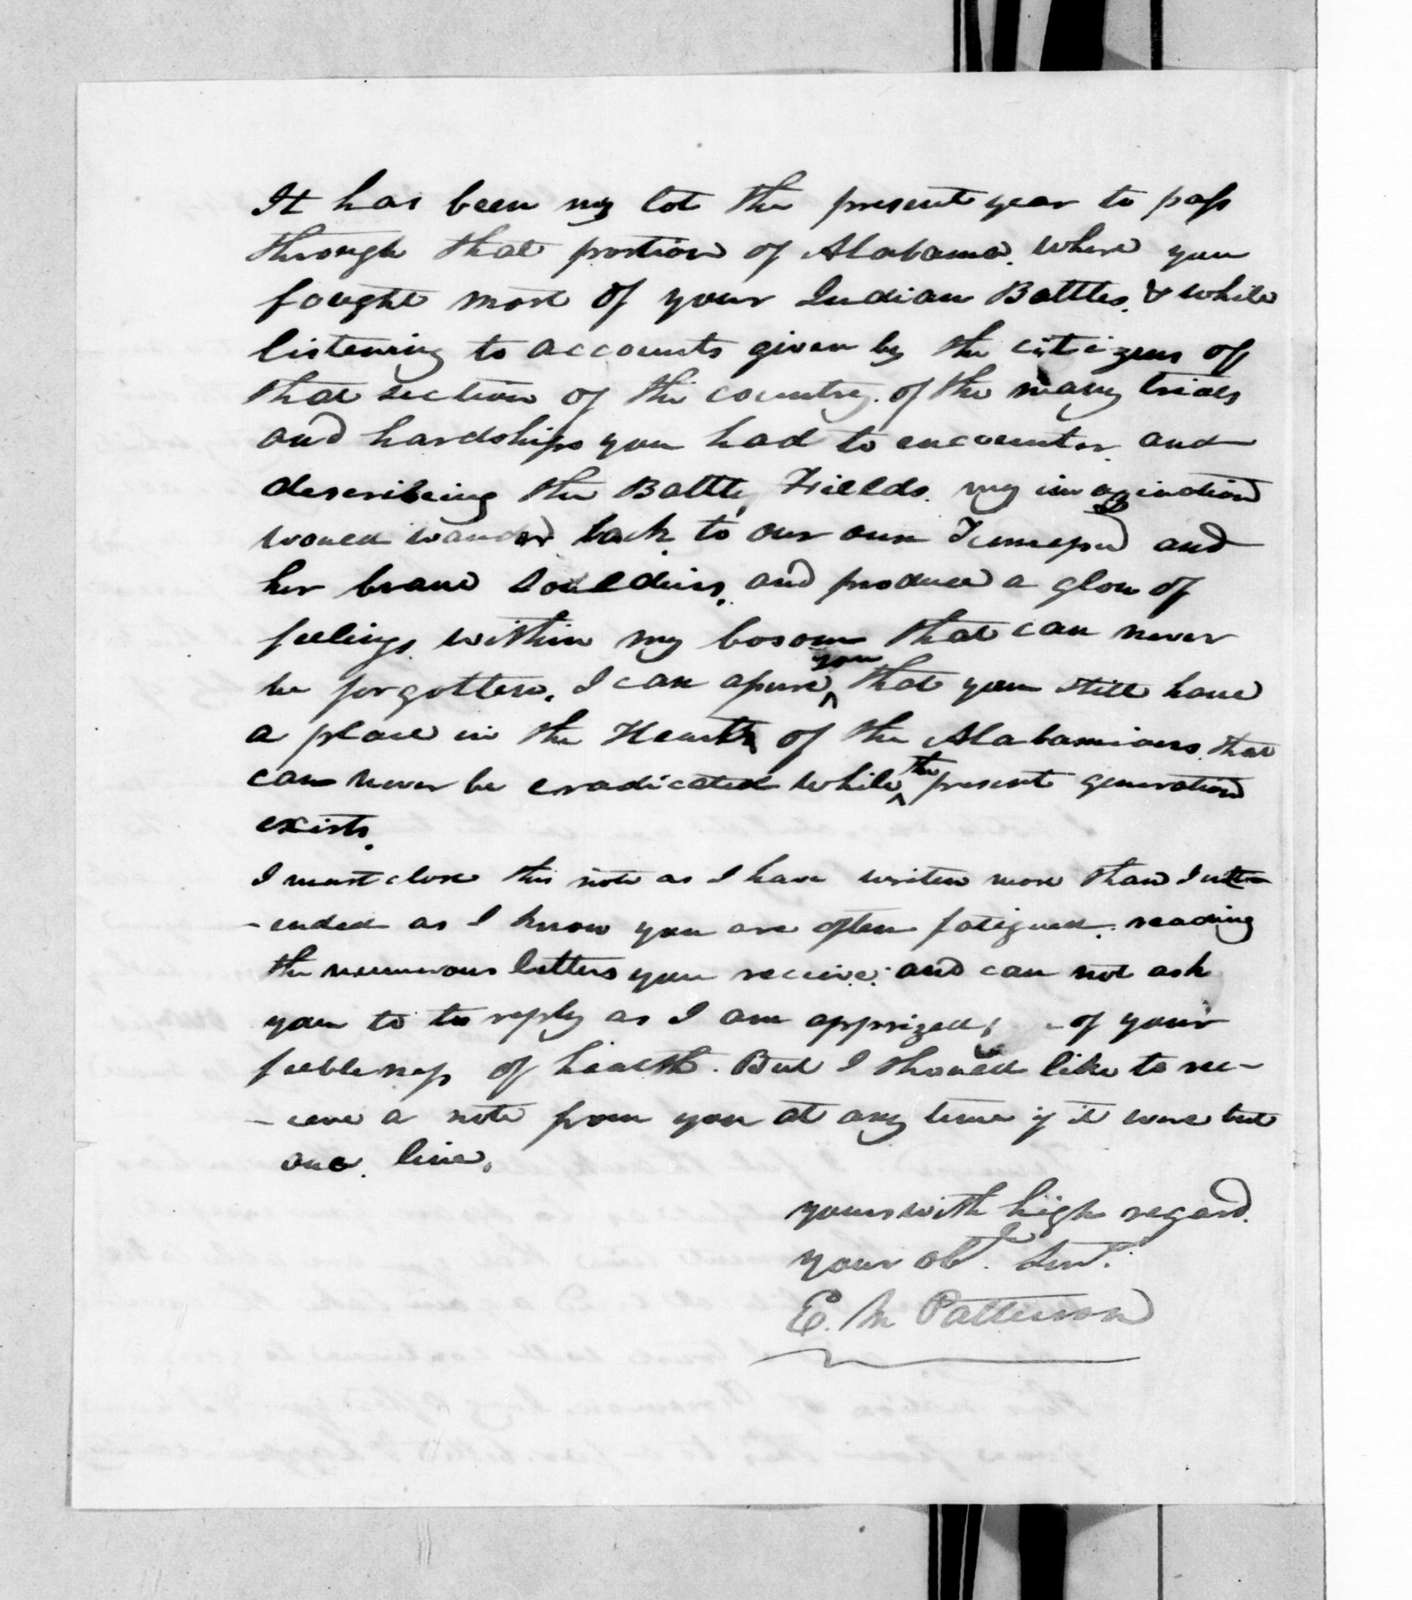 E. M. Patterson to Andrew Jackson, November 24, 1844